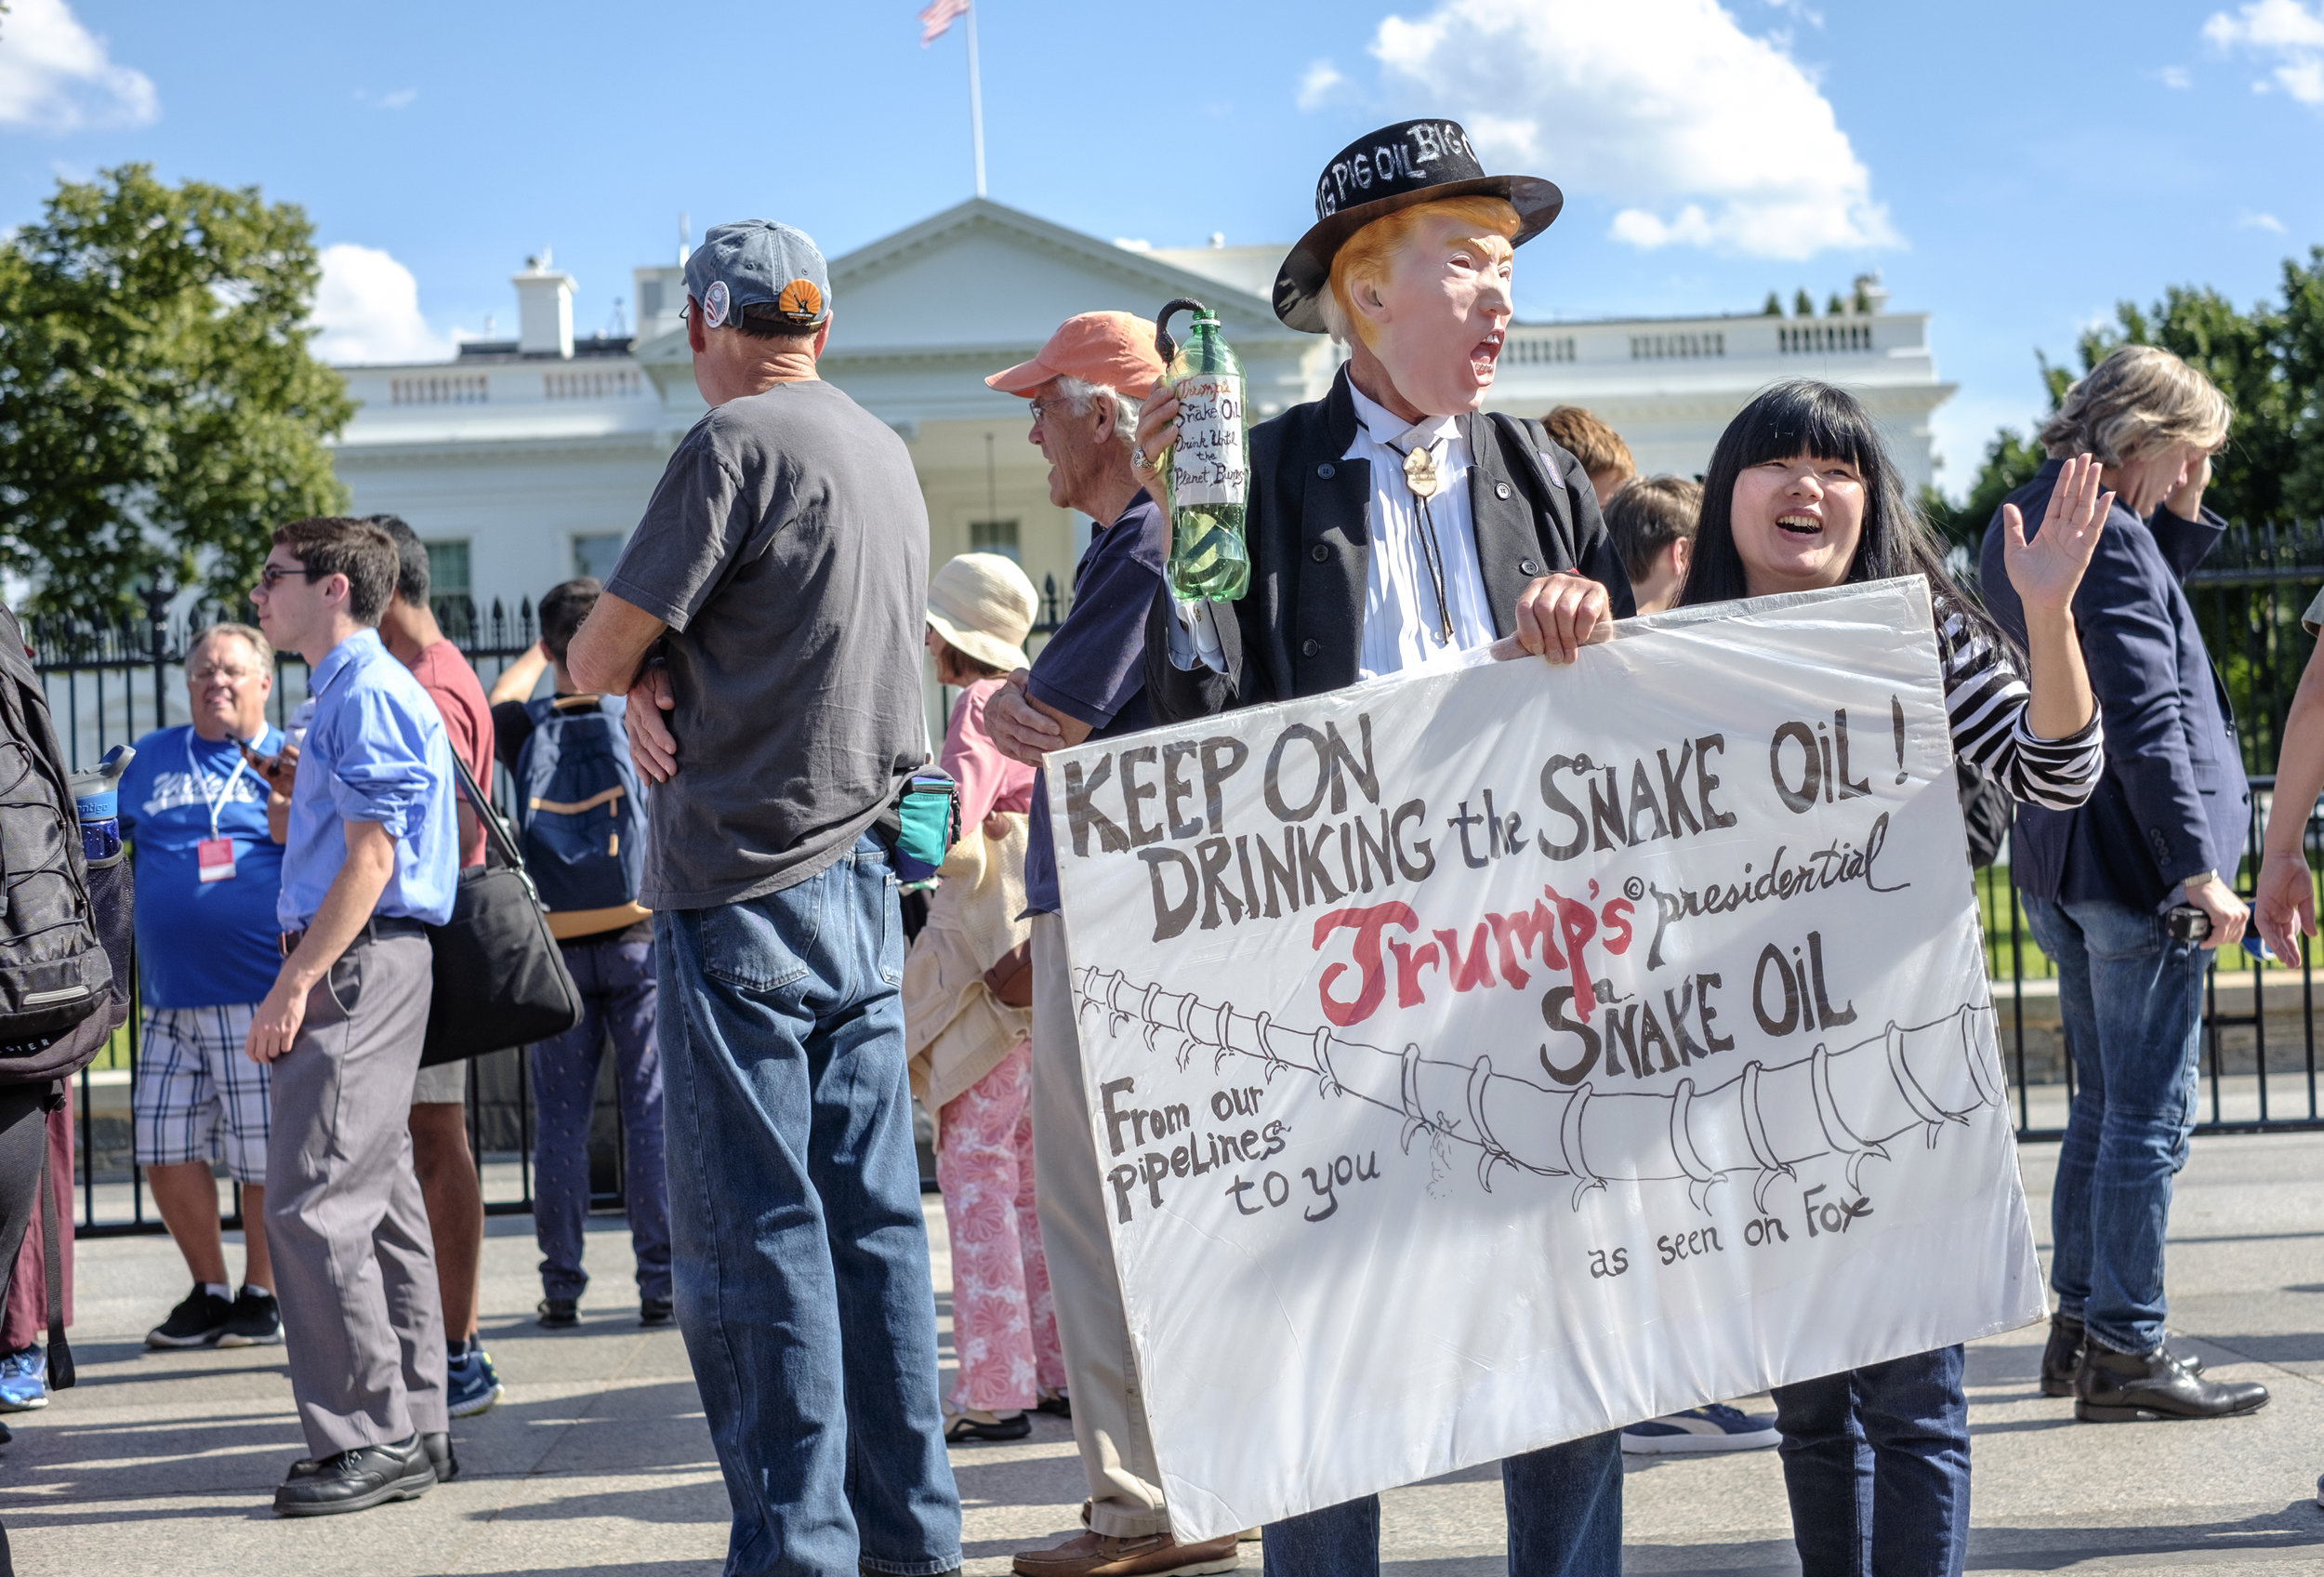 """David Barrows of Washington, DC is seen in front of the White House at an emergency rally wearing a Trump mask on Thursday, June 1, 2017. When asked what he was doing there he said, """"I'm here to try to do what I can to save our planet from their plans of destruction. There's no way the planet is going to survive all this greed and war, all these bombs falling, all this exploitation of tar sands, all the ruination of Indian lands and all the rest of it. So it's up to the people to stand up to tyrannical government. We have a better chance here than anybody else, so we need to do it.""""  Two hours after Trump announced the US withdrawal from the Paris Agreement on Climate Change, people gathered at the White House for an emergency rally to protest this decision. The Paris Agreement was signed by 196 countries. The US, along with Nicaragua and Syria, did not sign. Climate change is considered by many the planets' biggest issue with frontline communities being the most affected. Frontline communities are the poor, communities of color and Indigenous people."""